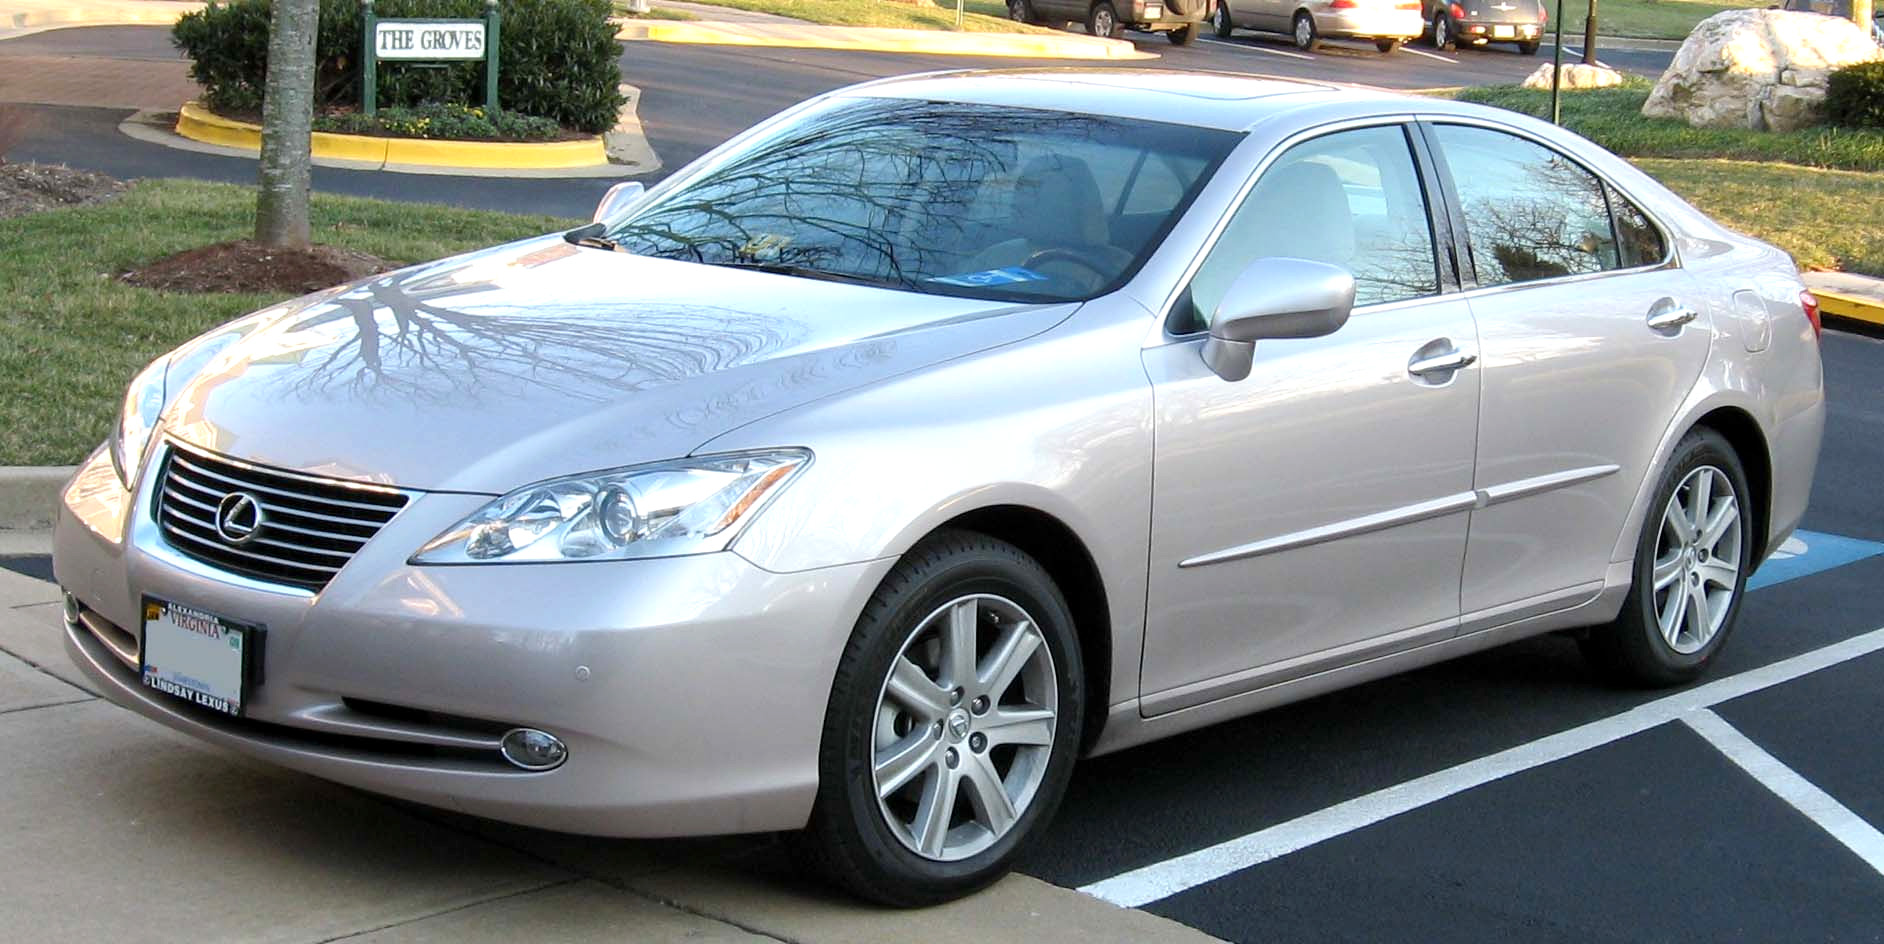 Lexus IS 350 #12